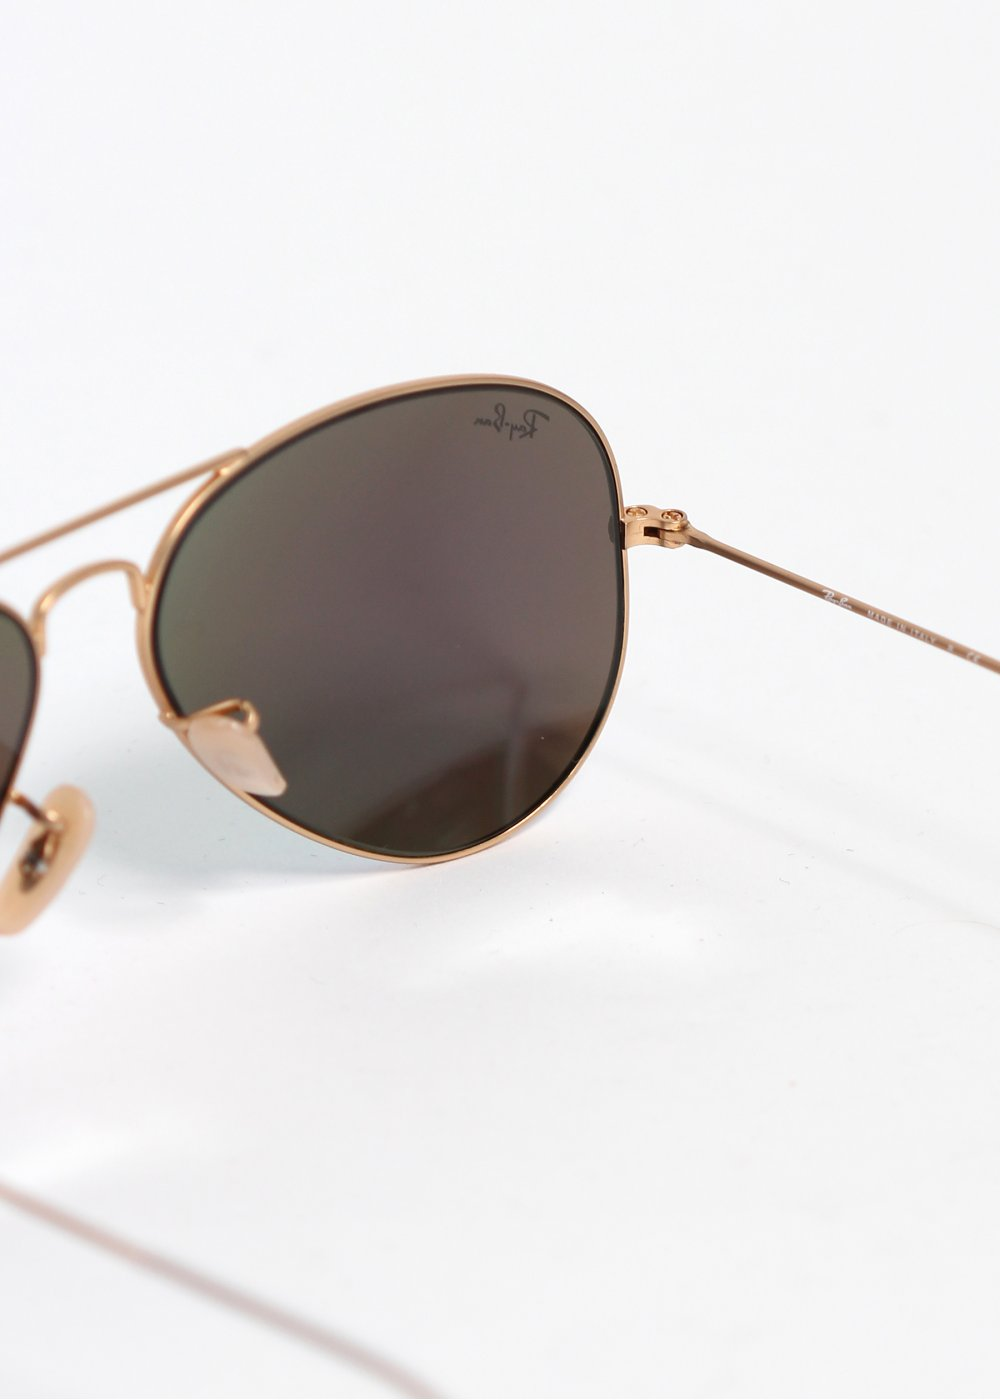 ray ban aviator sunglasses gold green. Black Bedroom Furniture Sets. Home Design Ideas